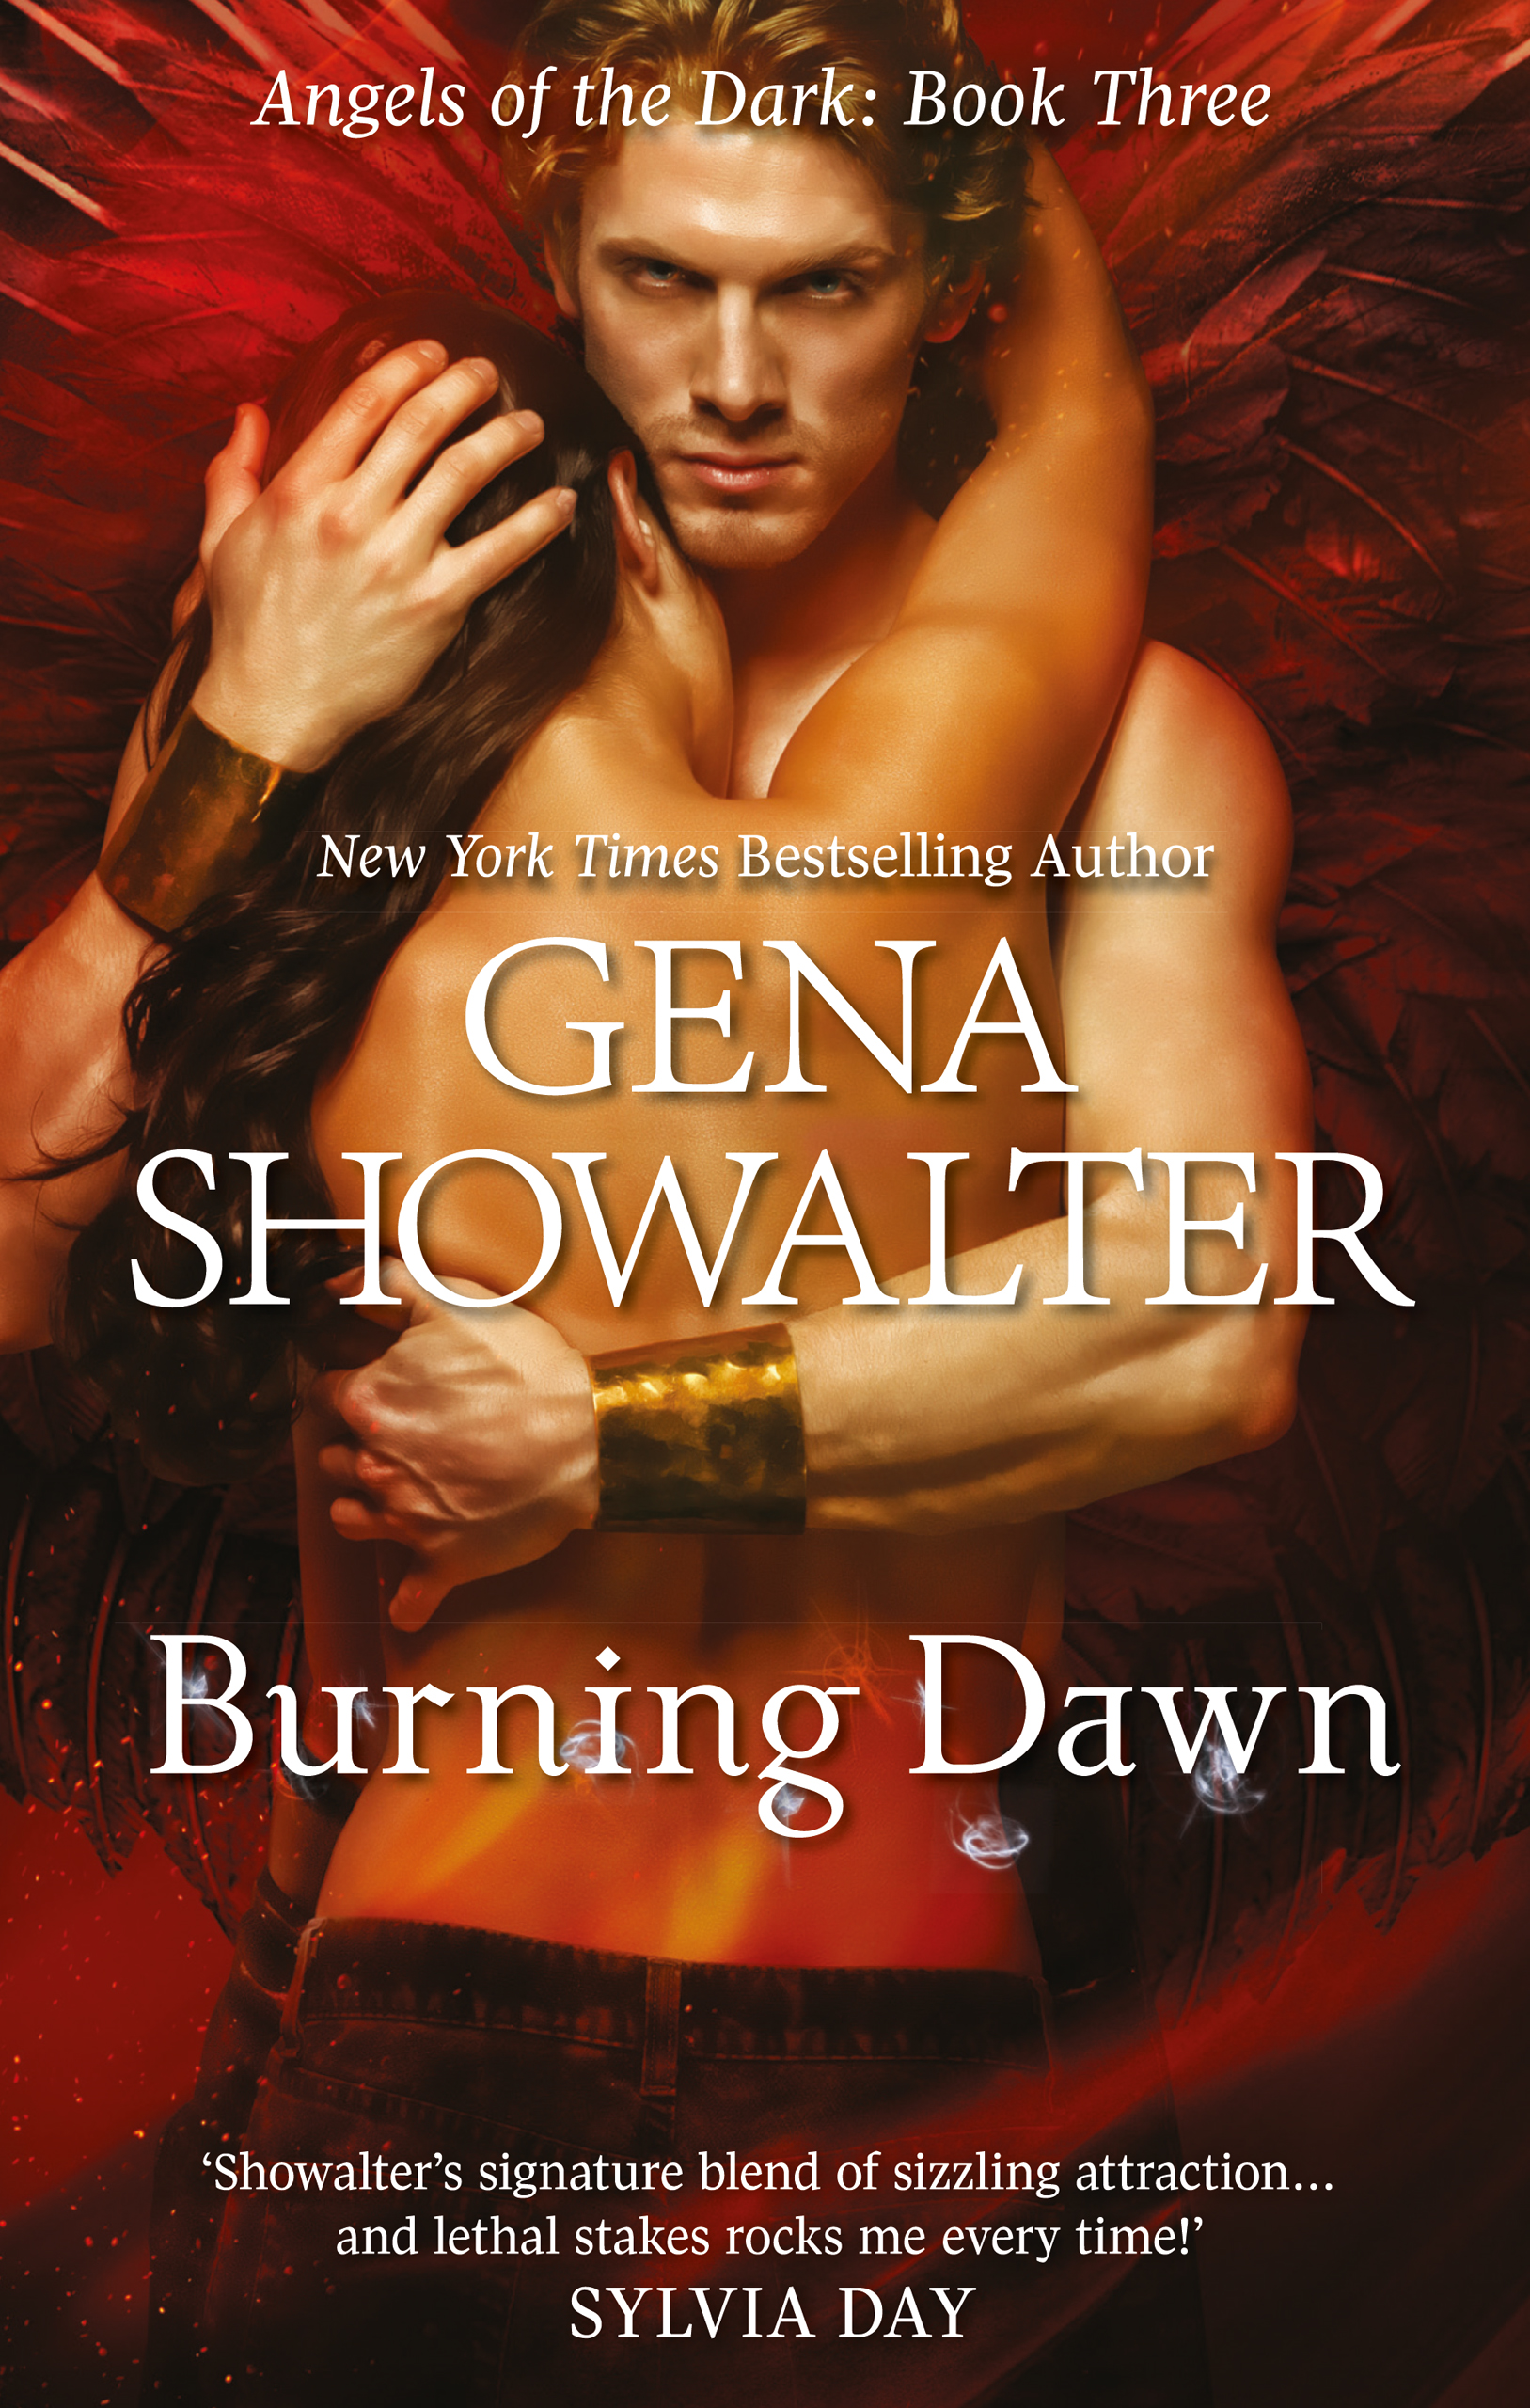 Burning Dawn (Angels of the Dark - Book 3)